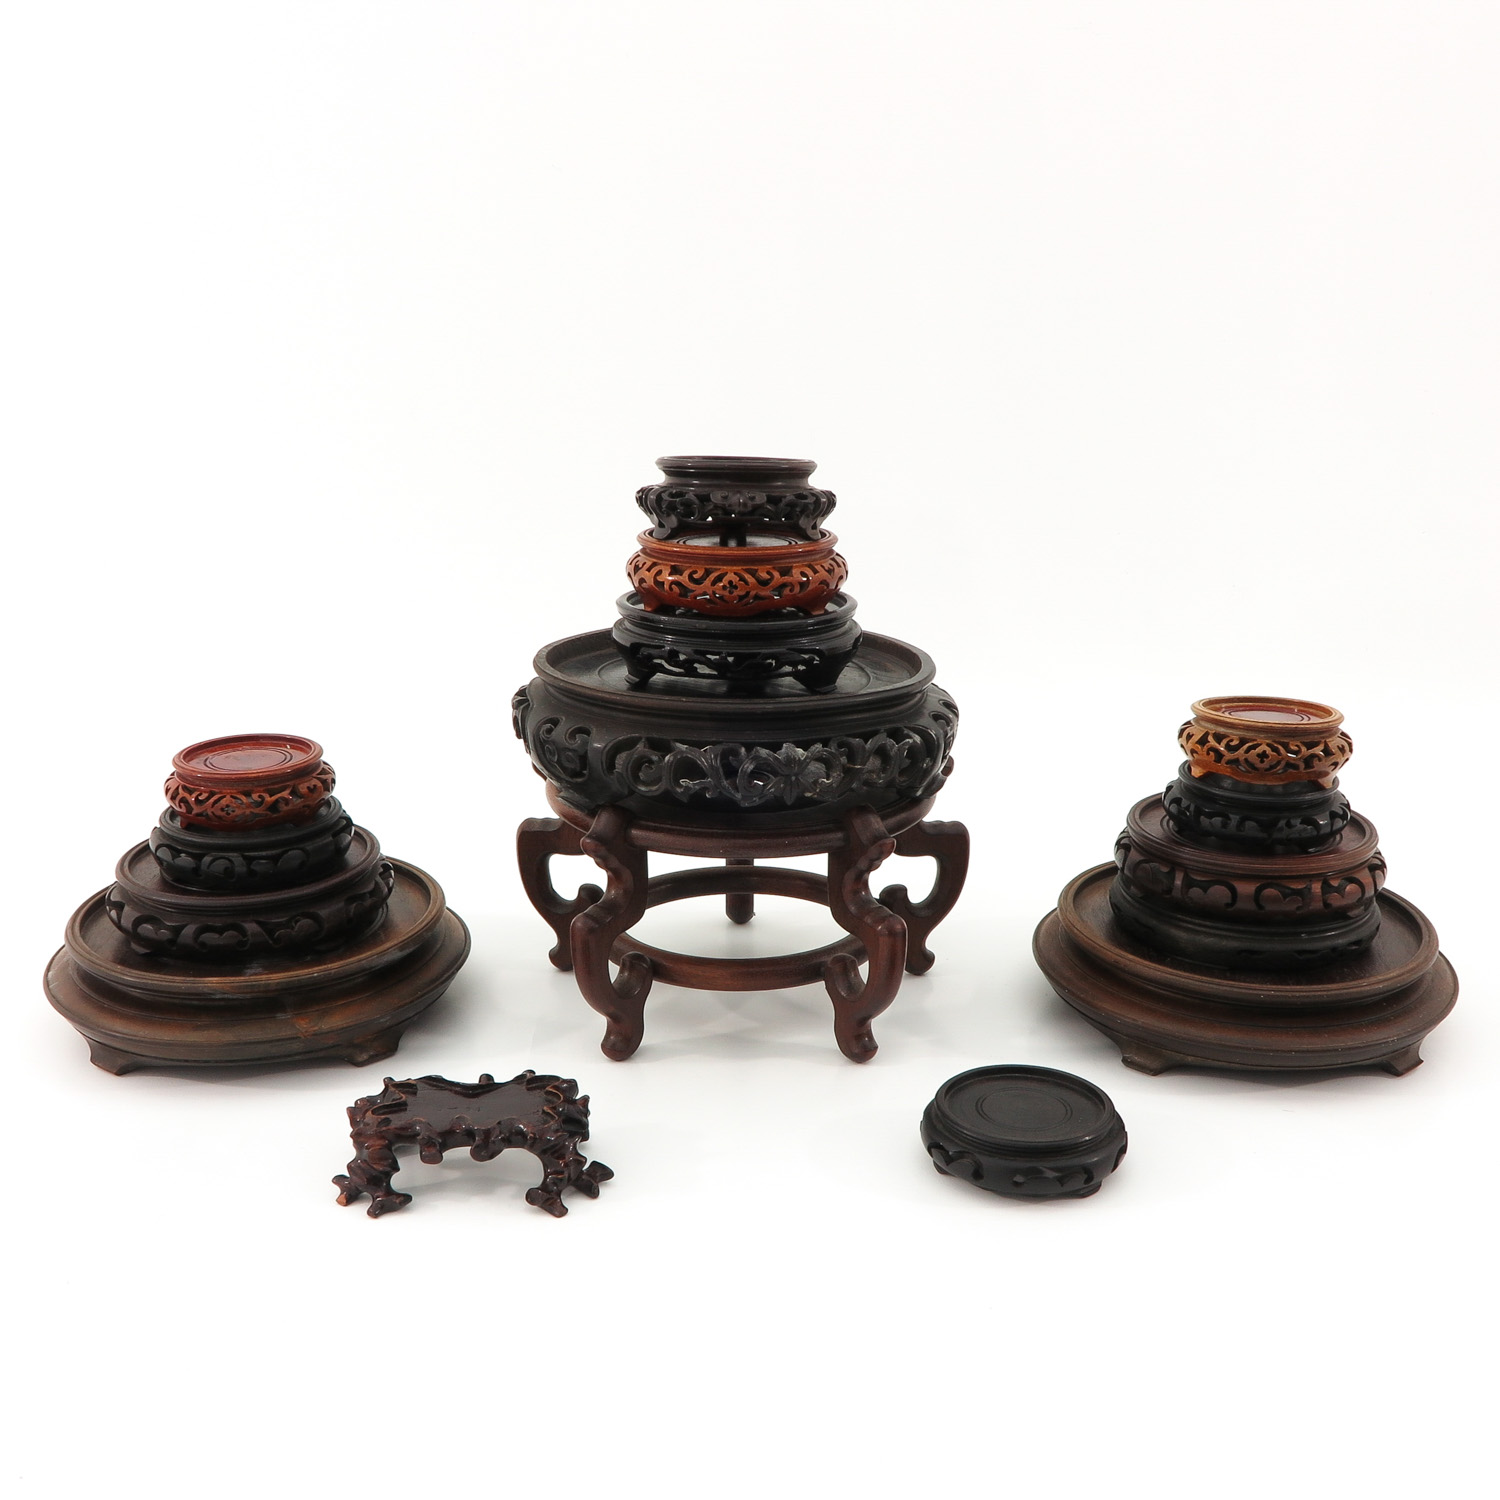 A Collection of Wood Bases